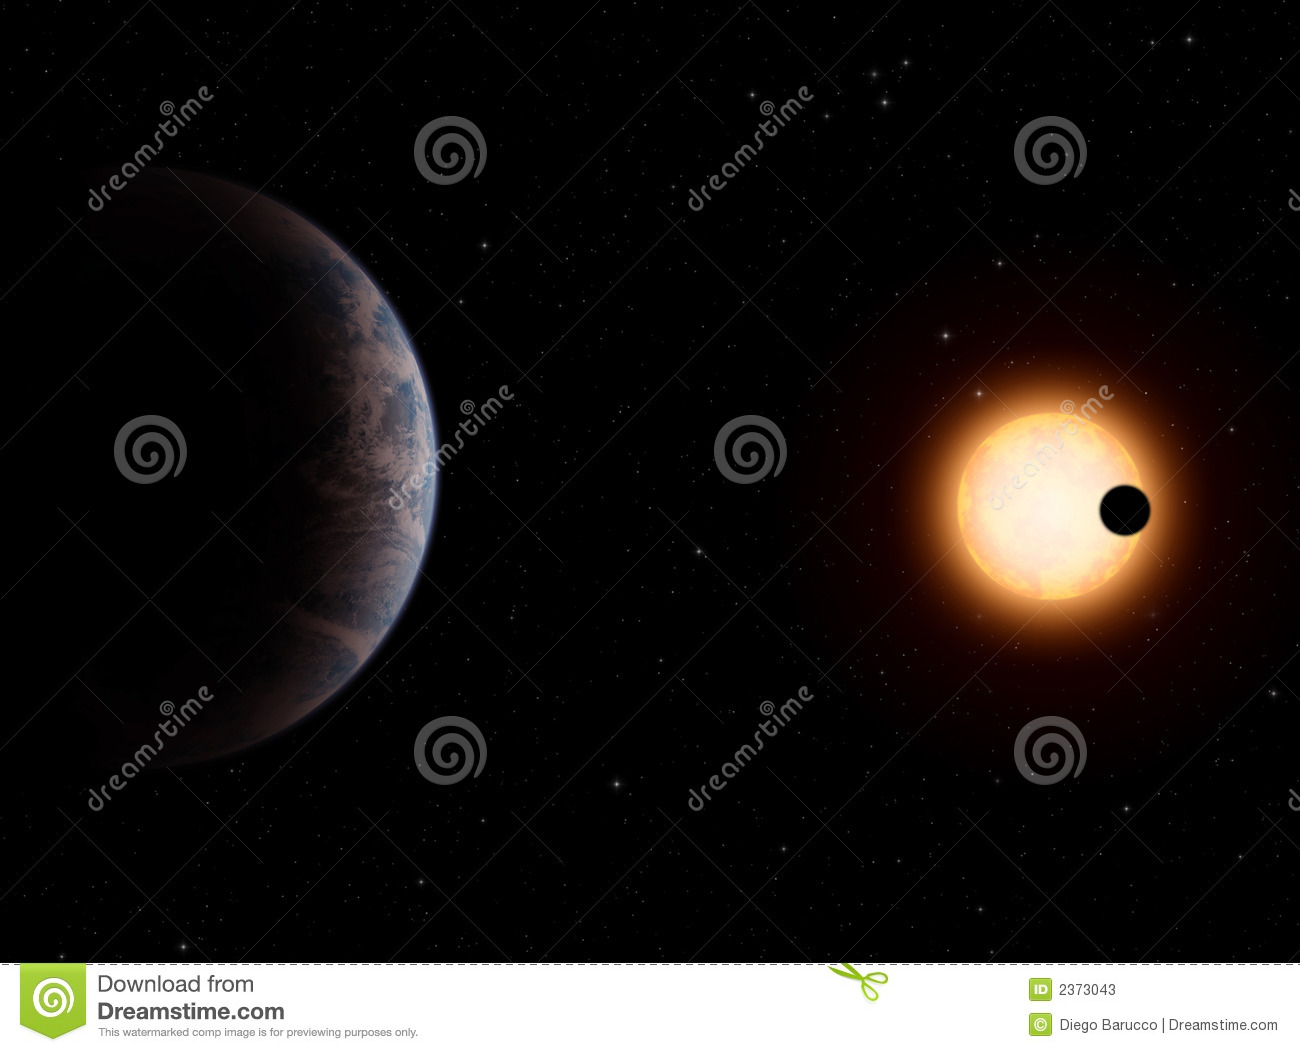 Gliese581-c Extrasolar Planet Stock Photos - Image: 2373043